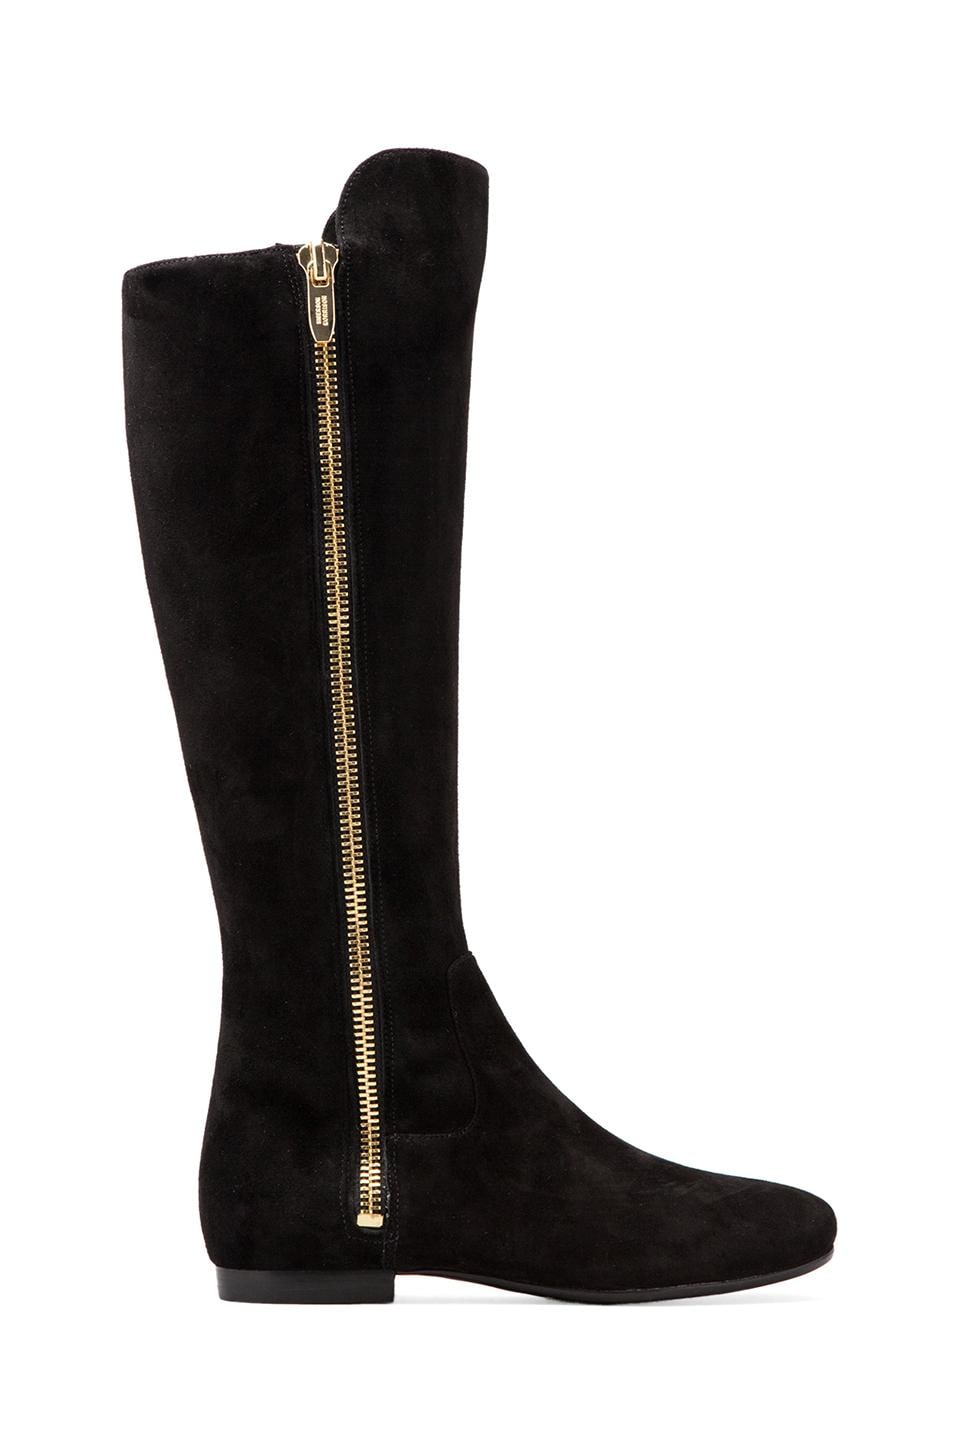 Sigerson Morrison Pamela Side Zip Boot in Black